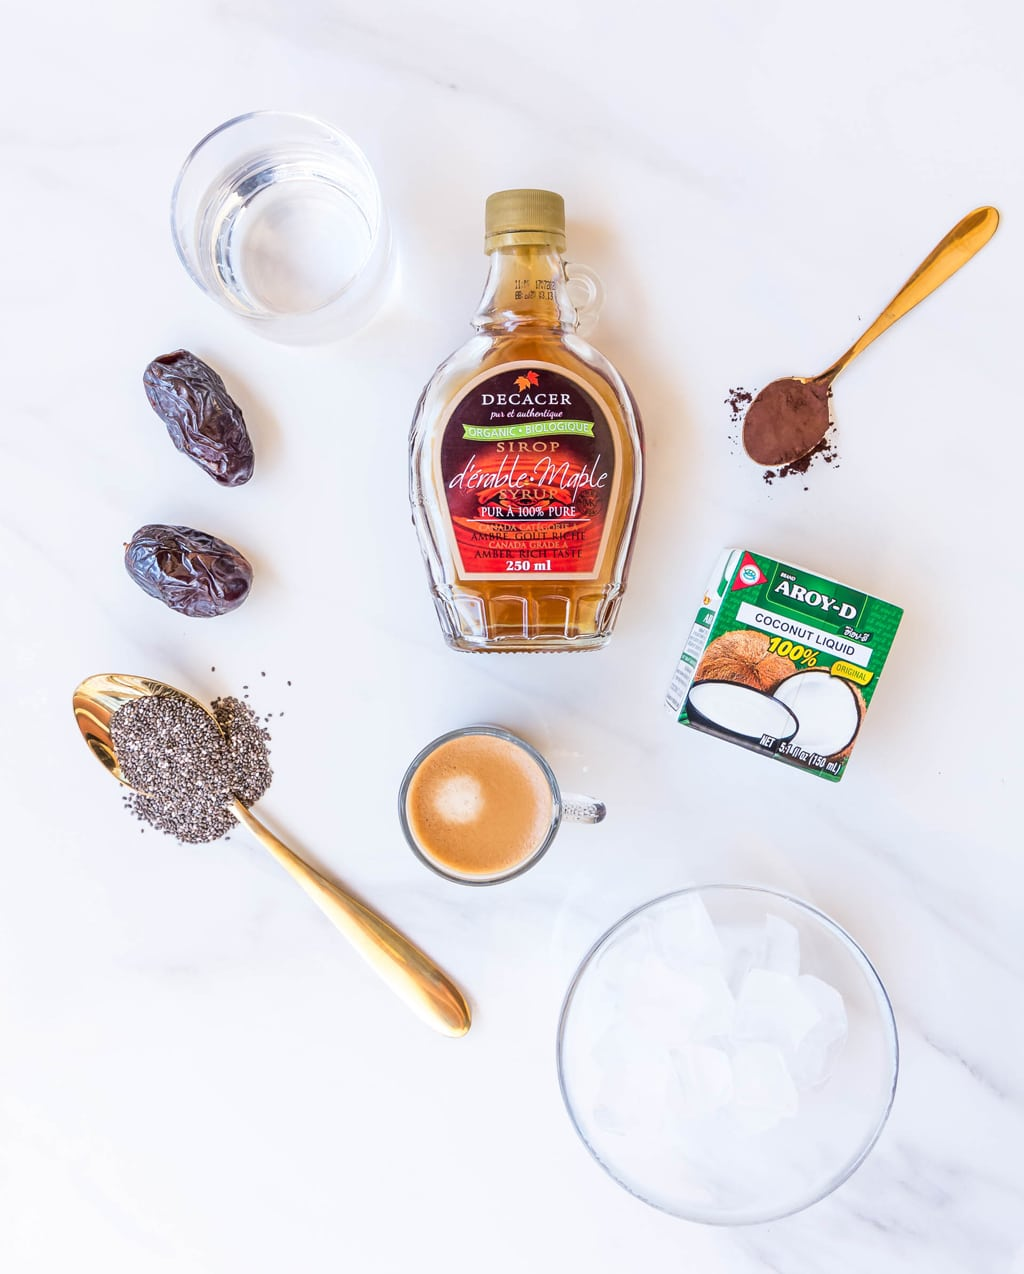 Clean Eating Iced Coffee Mocha Recipe - it's simple, SUGAR FREE, healthy drink you can make in the comfort of your home!